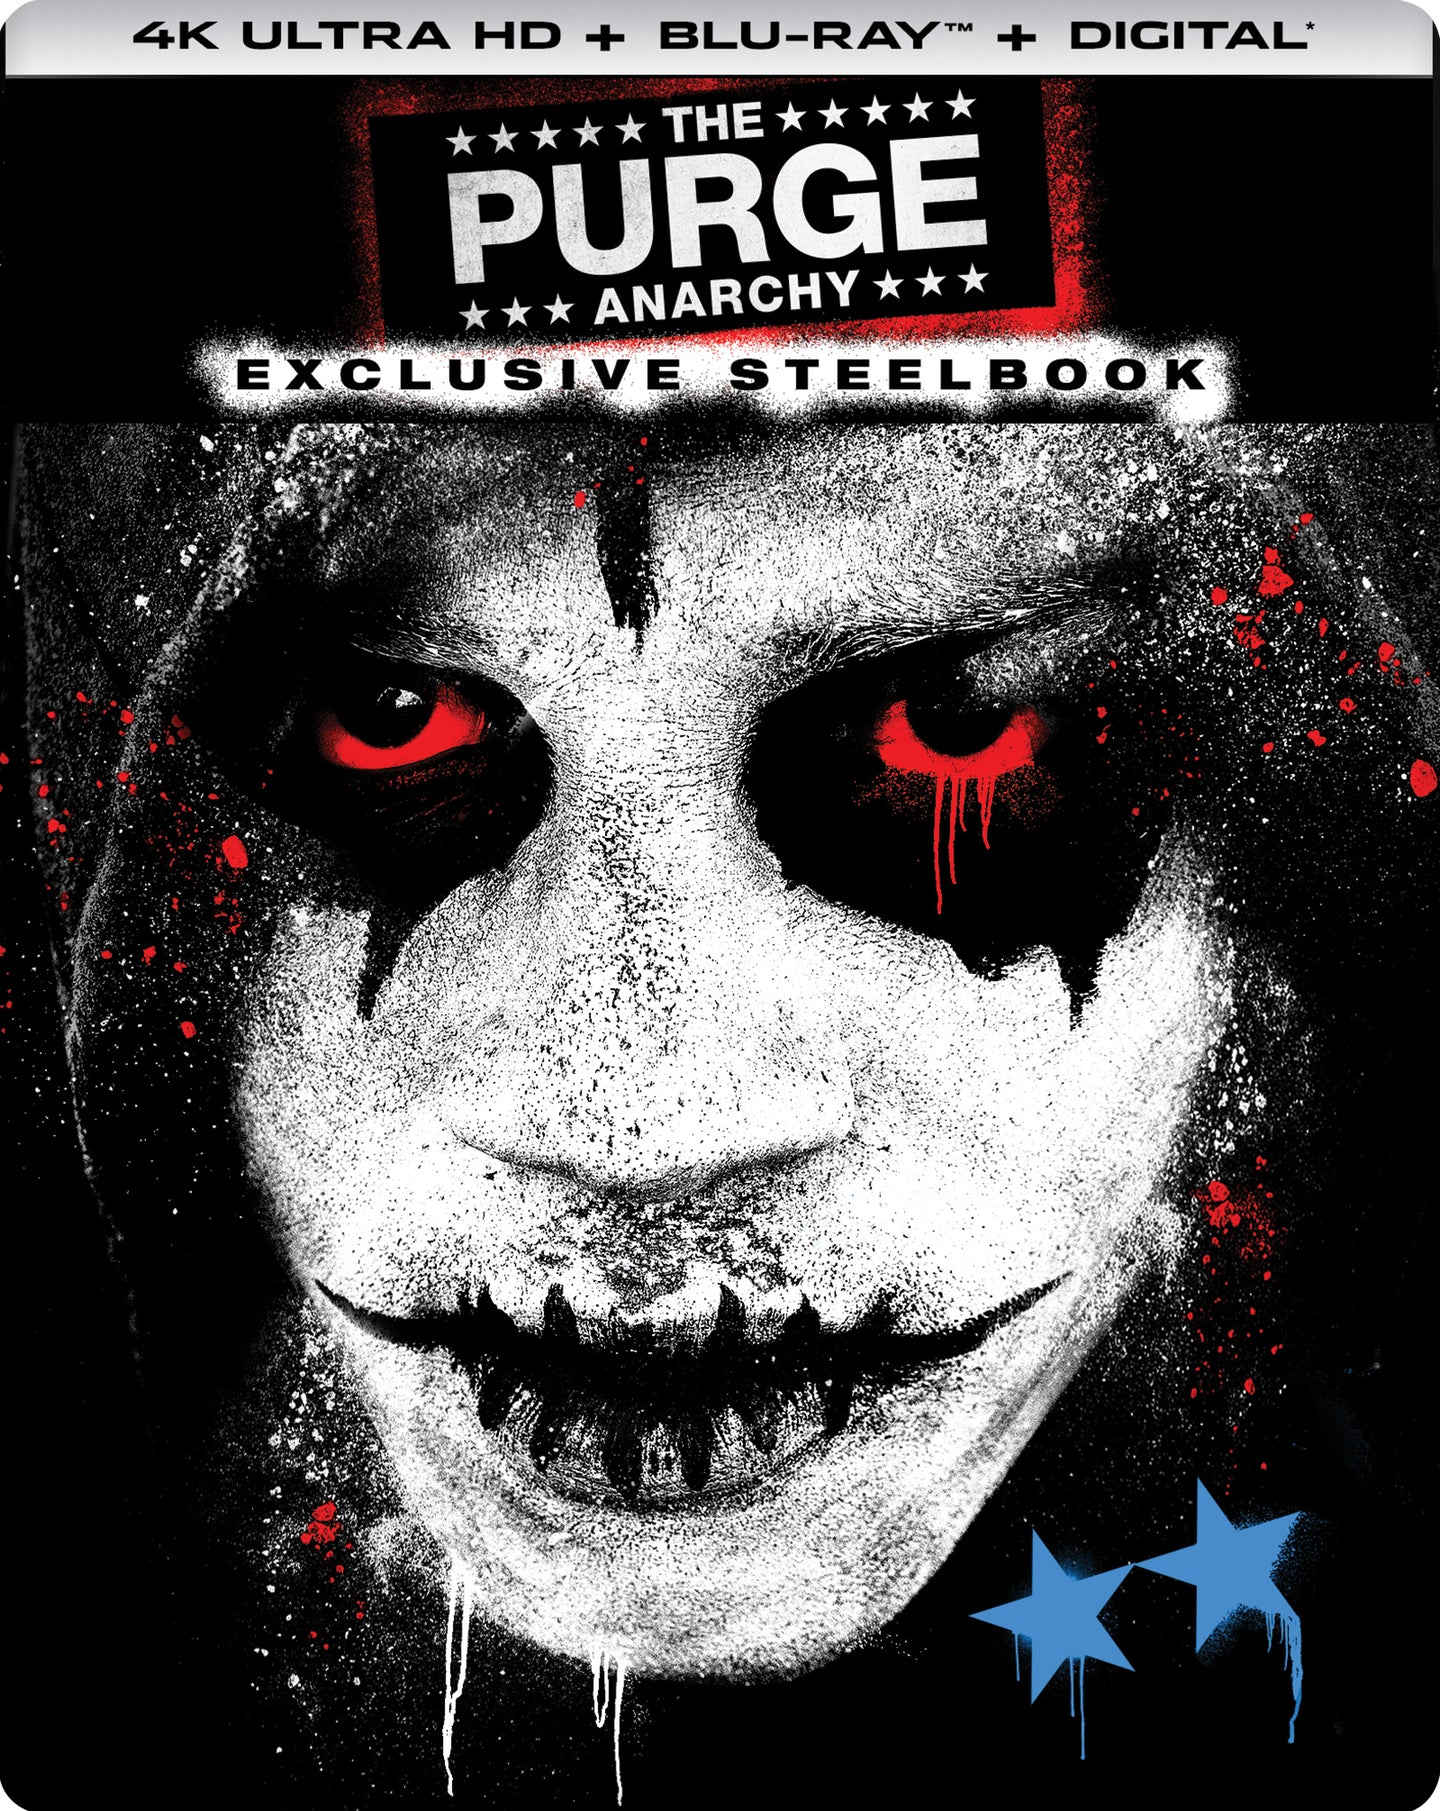 The Purge: Anarchy (2014) iTunes 4K code